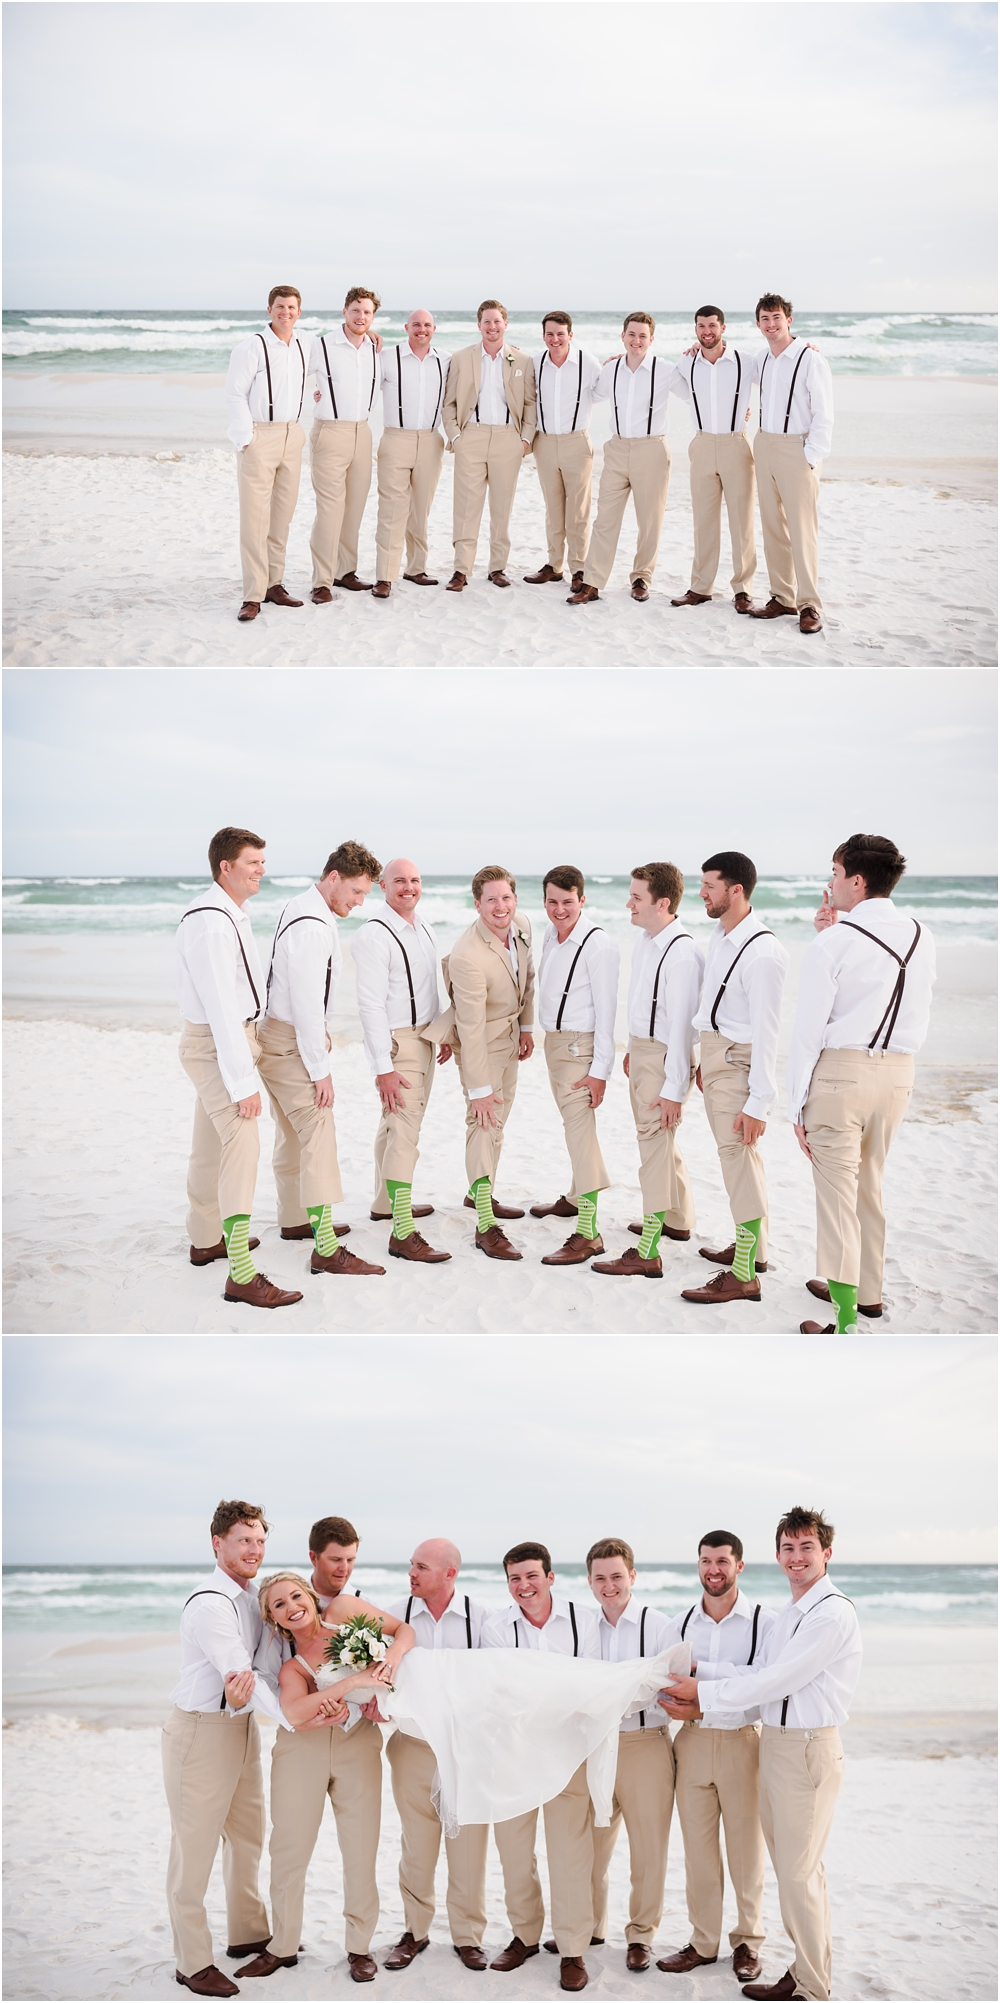 dillard-florida-wedding-photographer-panama-city-beach-dothan-tallahassee-kiersten-grant-photography-129.jpg